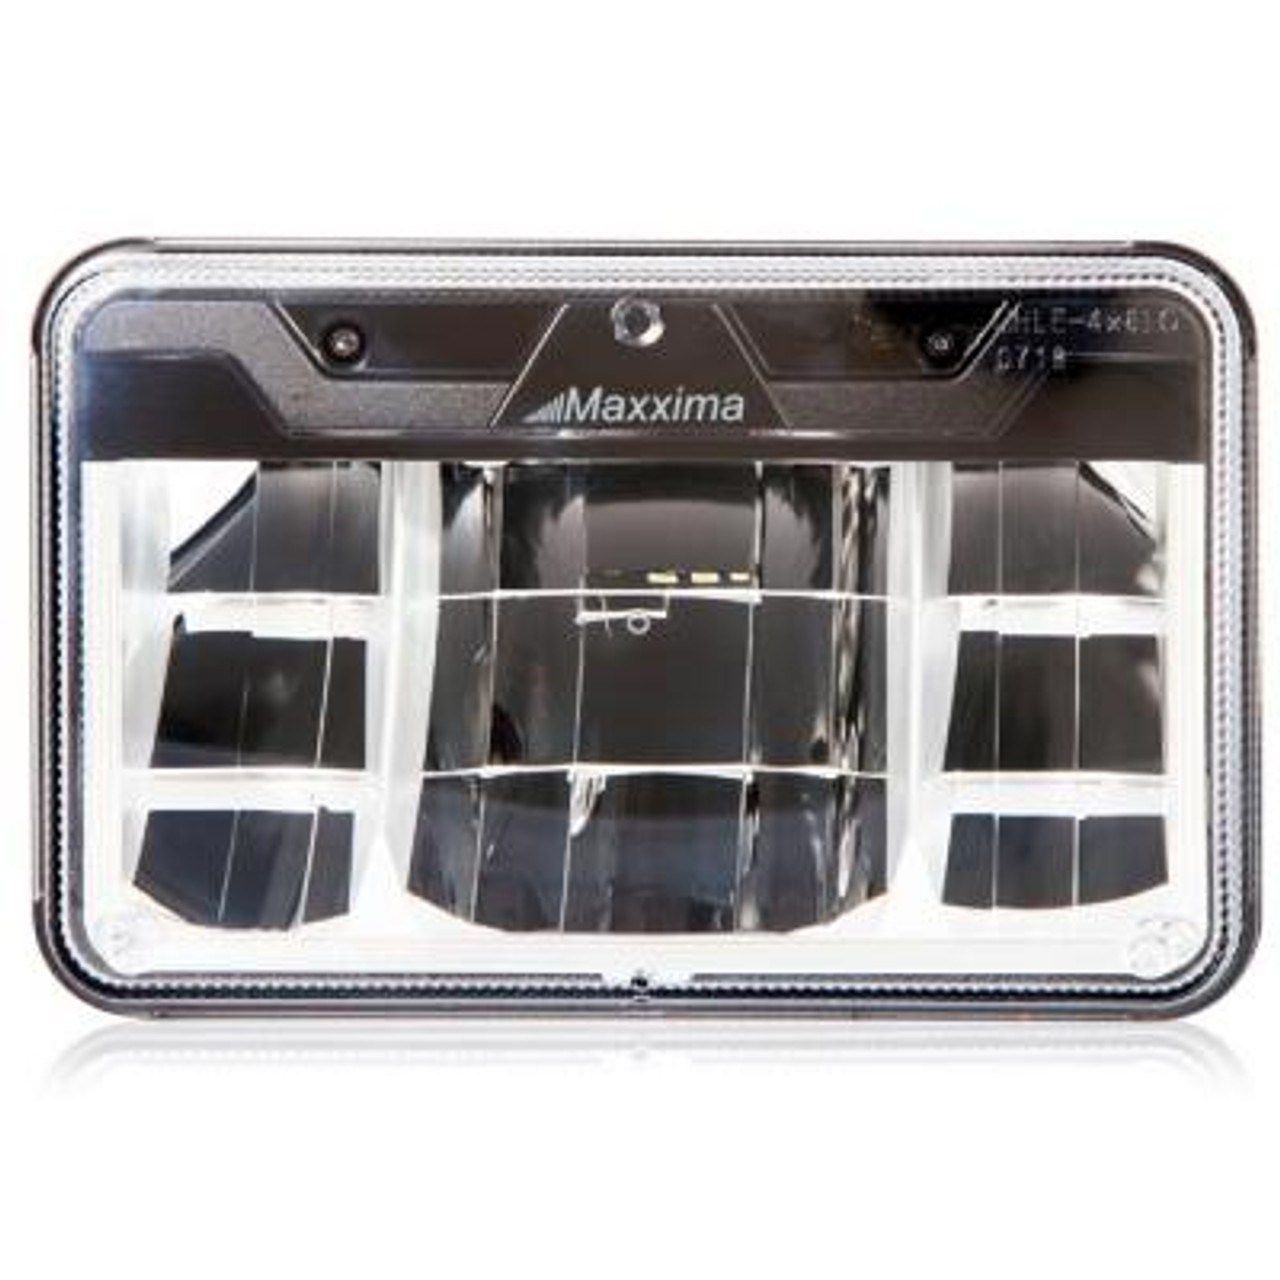 """Maxxima 4""""X 6"""" LED Headlamp- 4 Beam System, Lo Beam replacement for H4656  MHLE-4X6LO"""